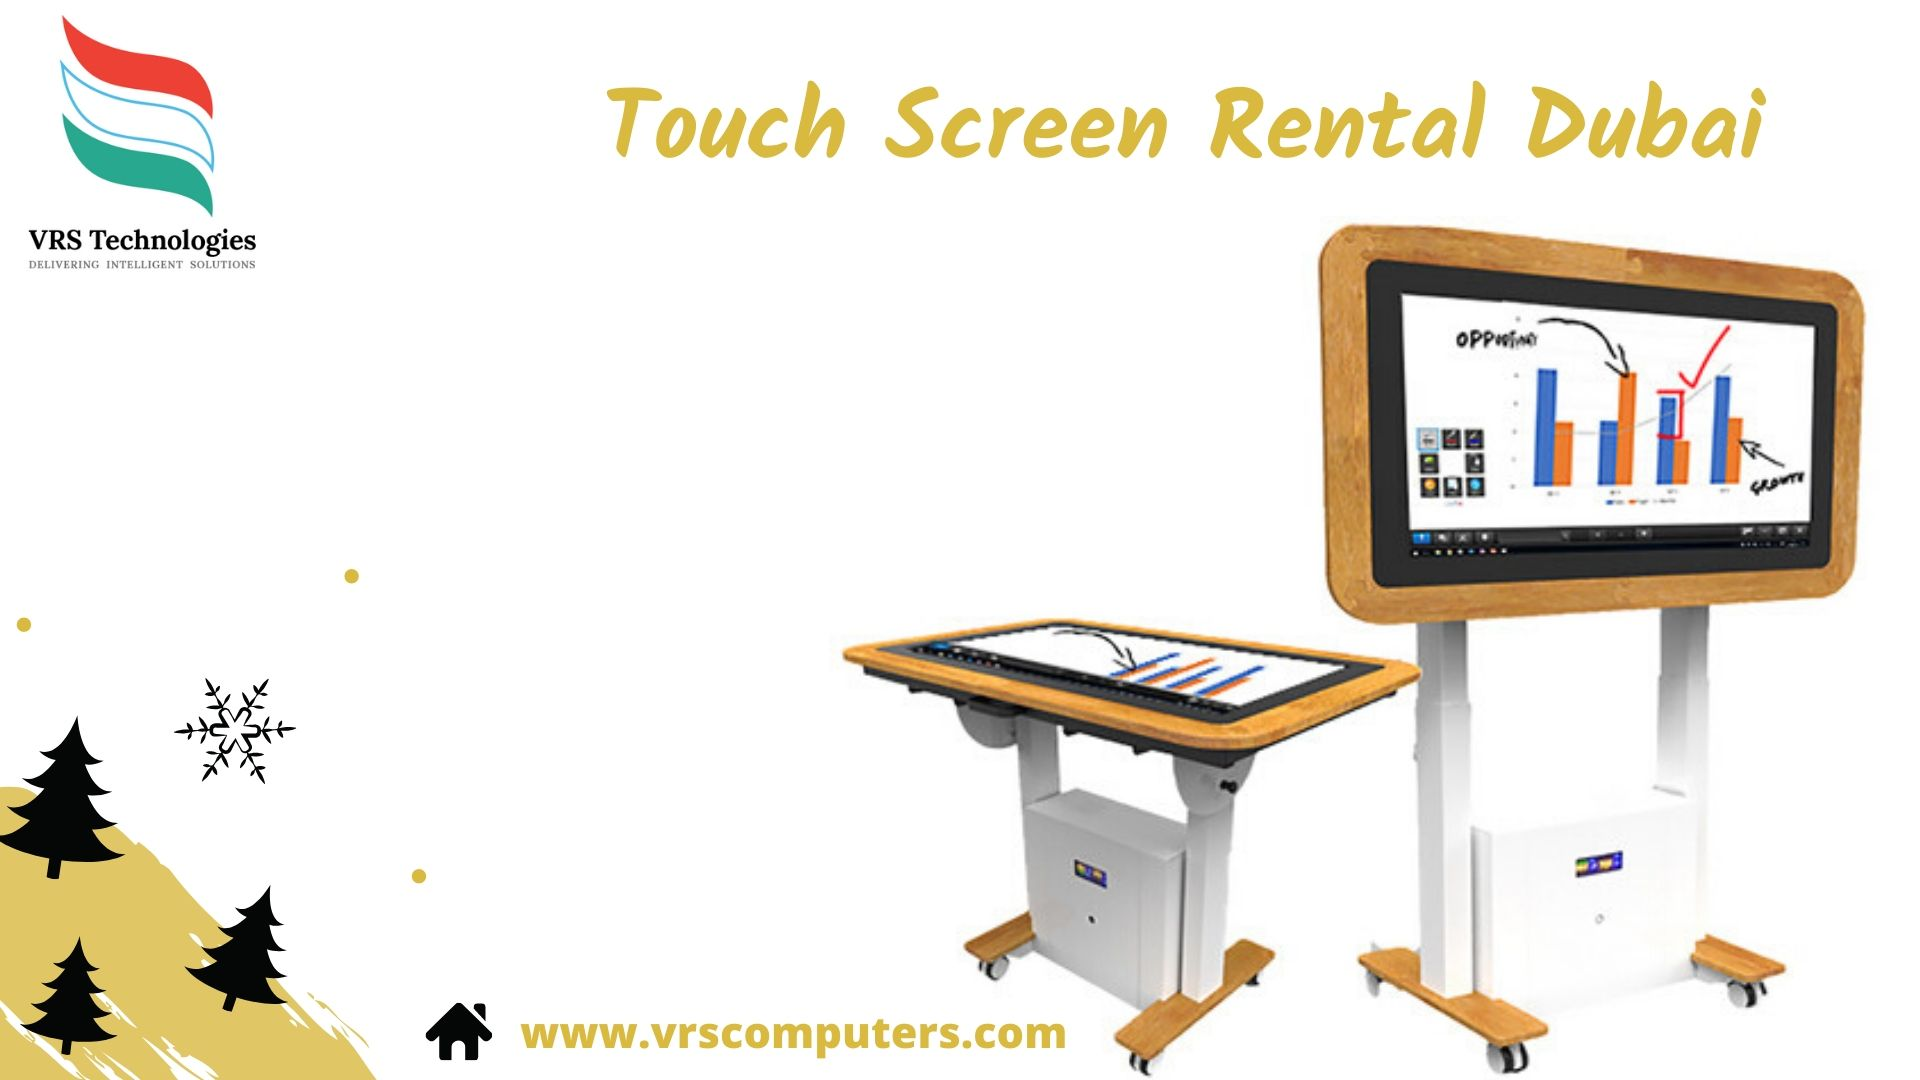 touch-screen-rental-dubai-at-vrs-technologies